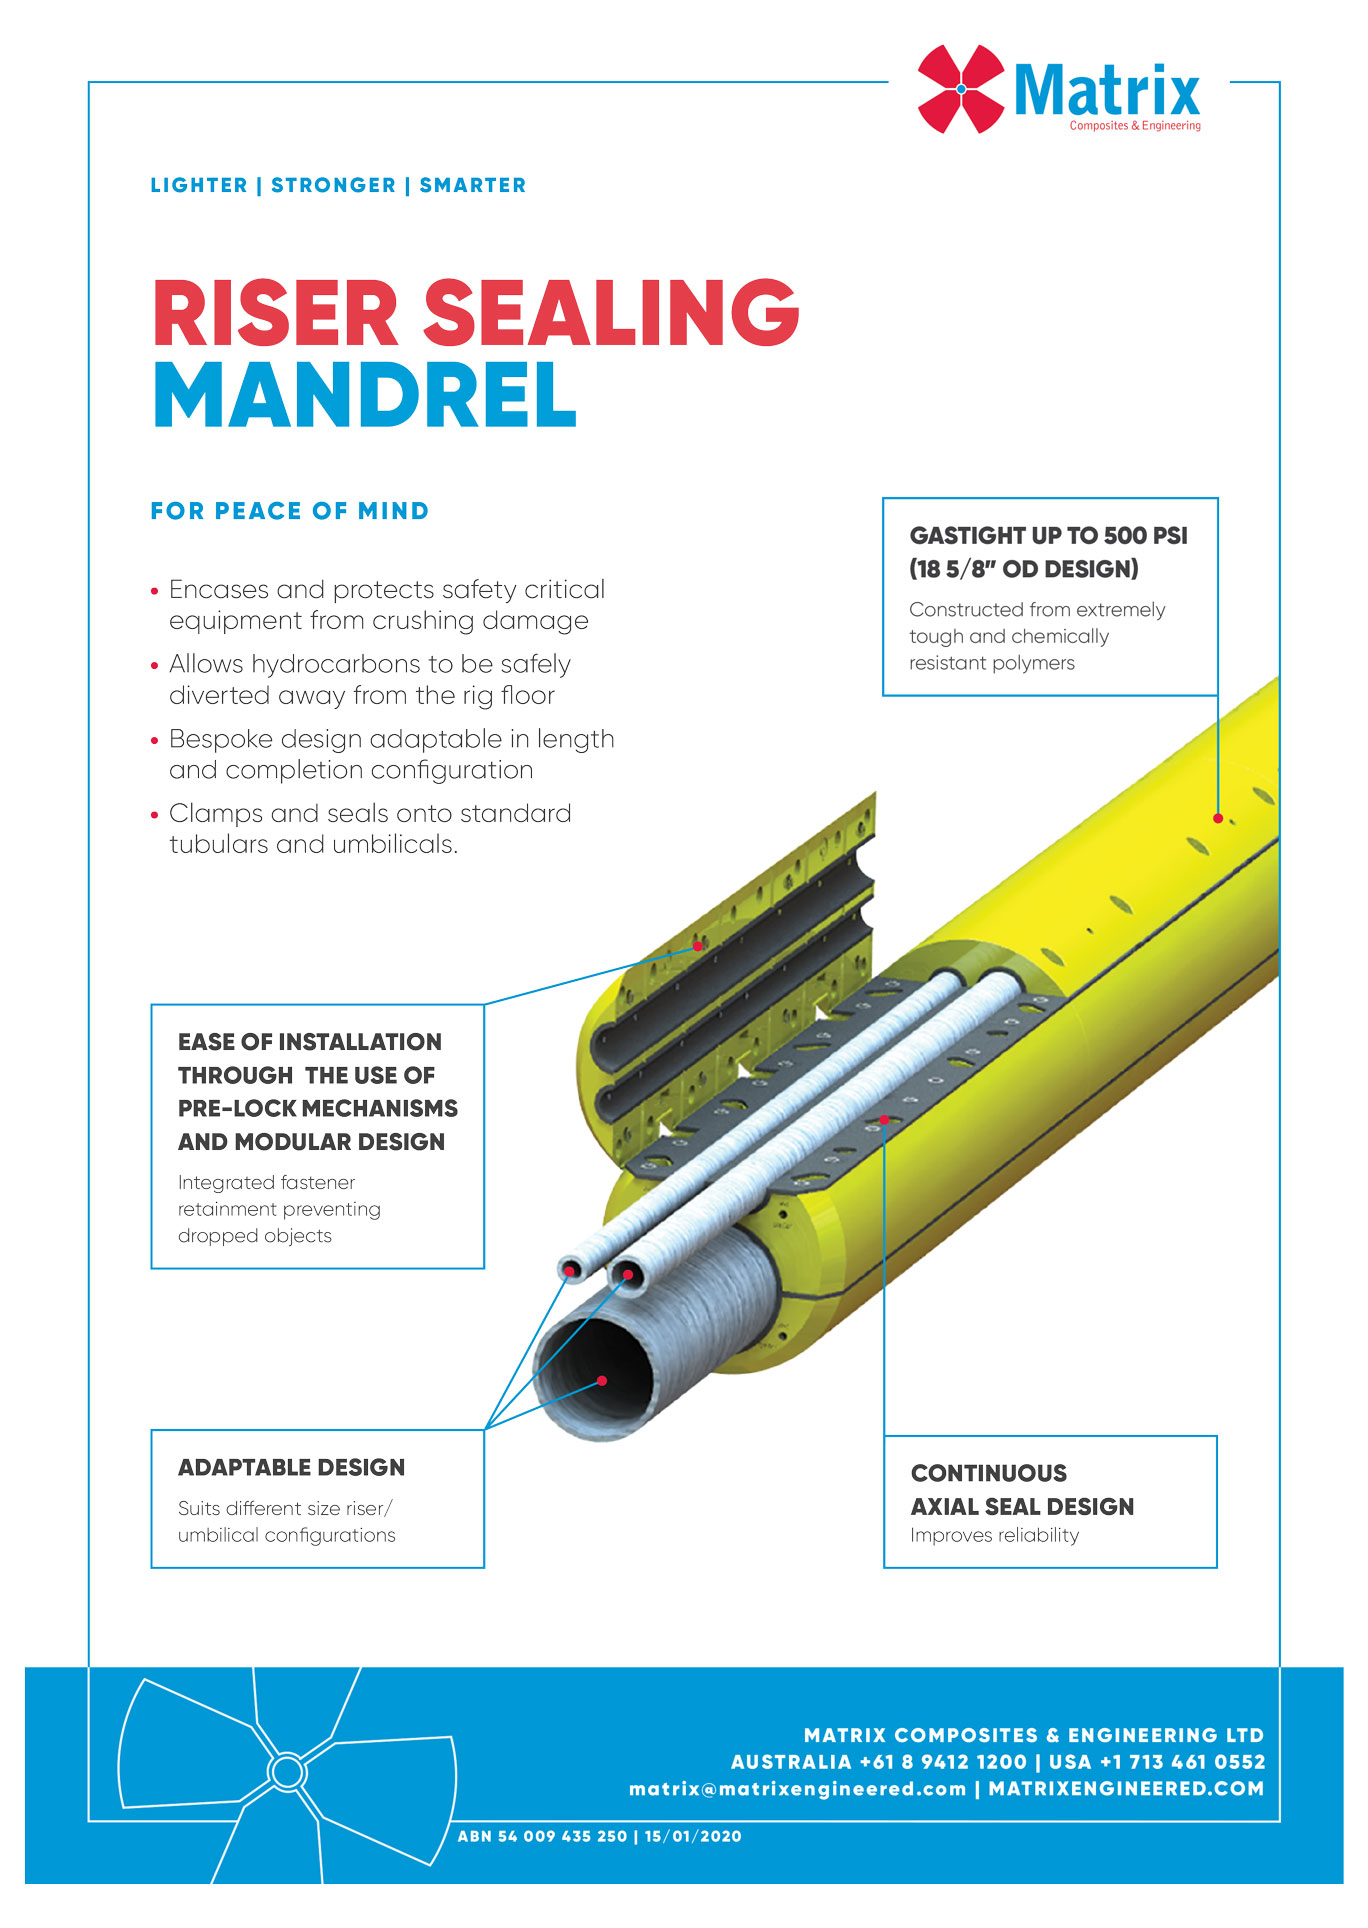 Matrix Riser Sealing Mandrel